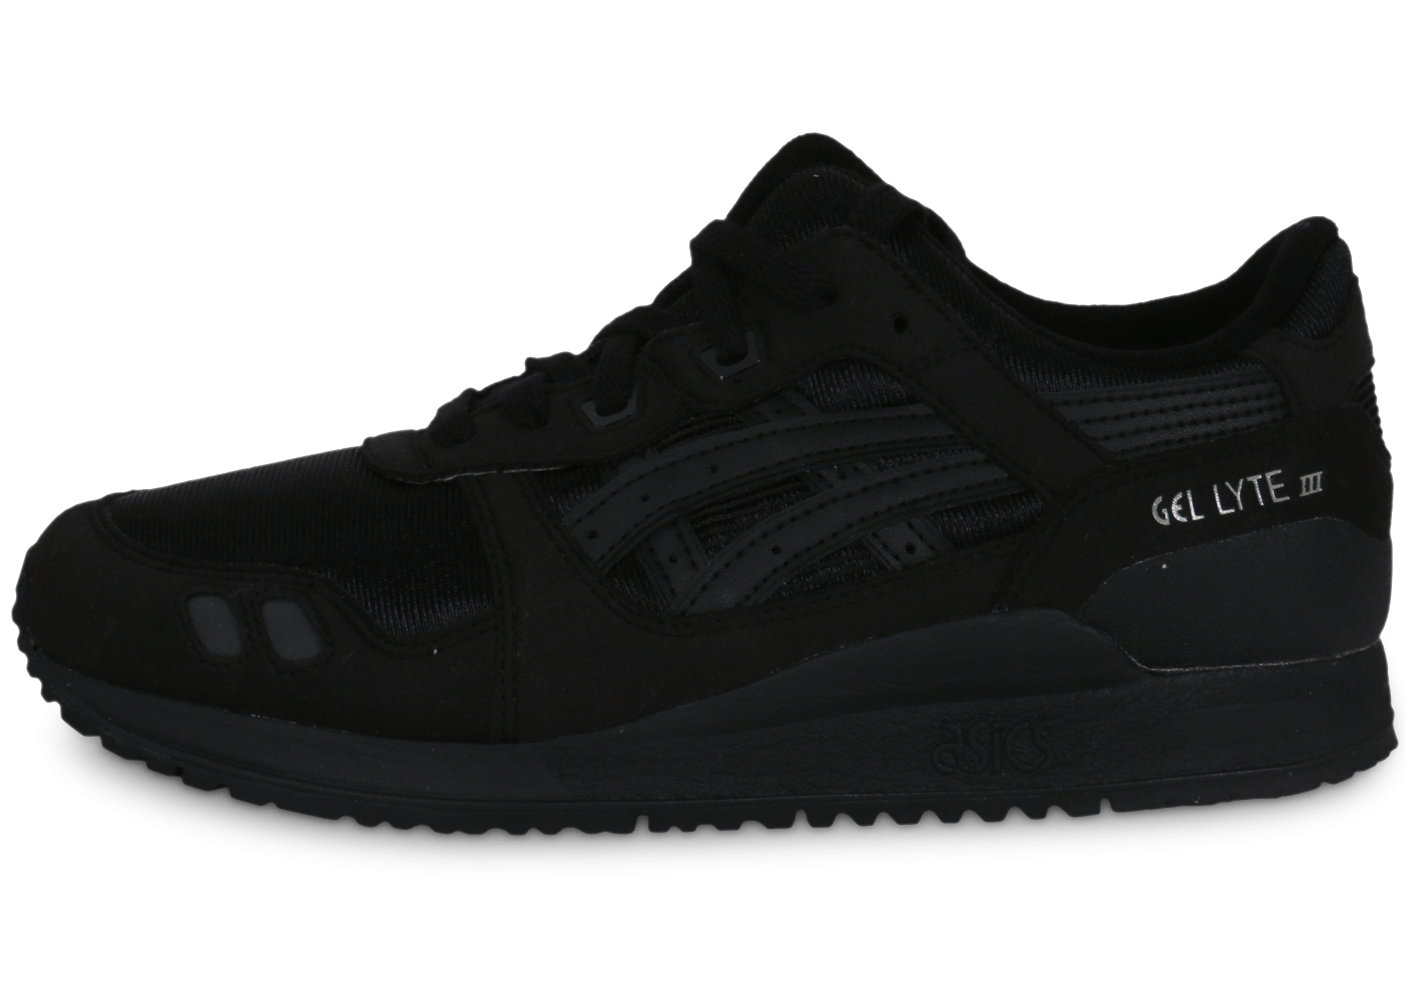 asics gel lyte 3 junior noire chaussures chaussures chausport. Black Bedroom Furniture Sets. Home Design Ideas